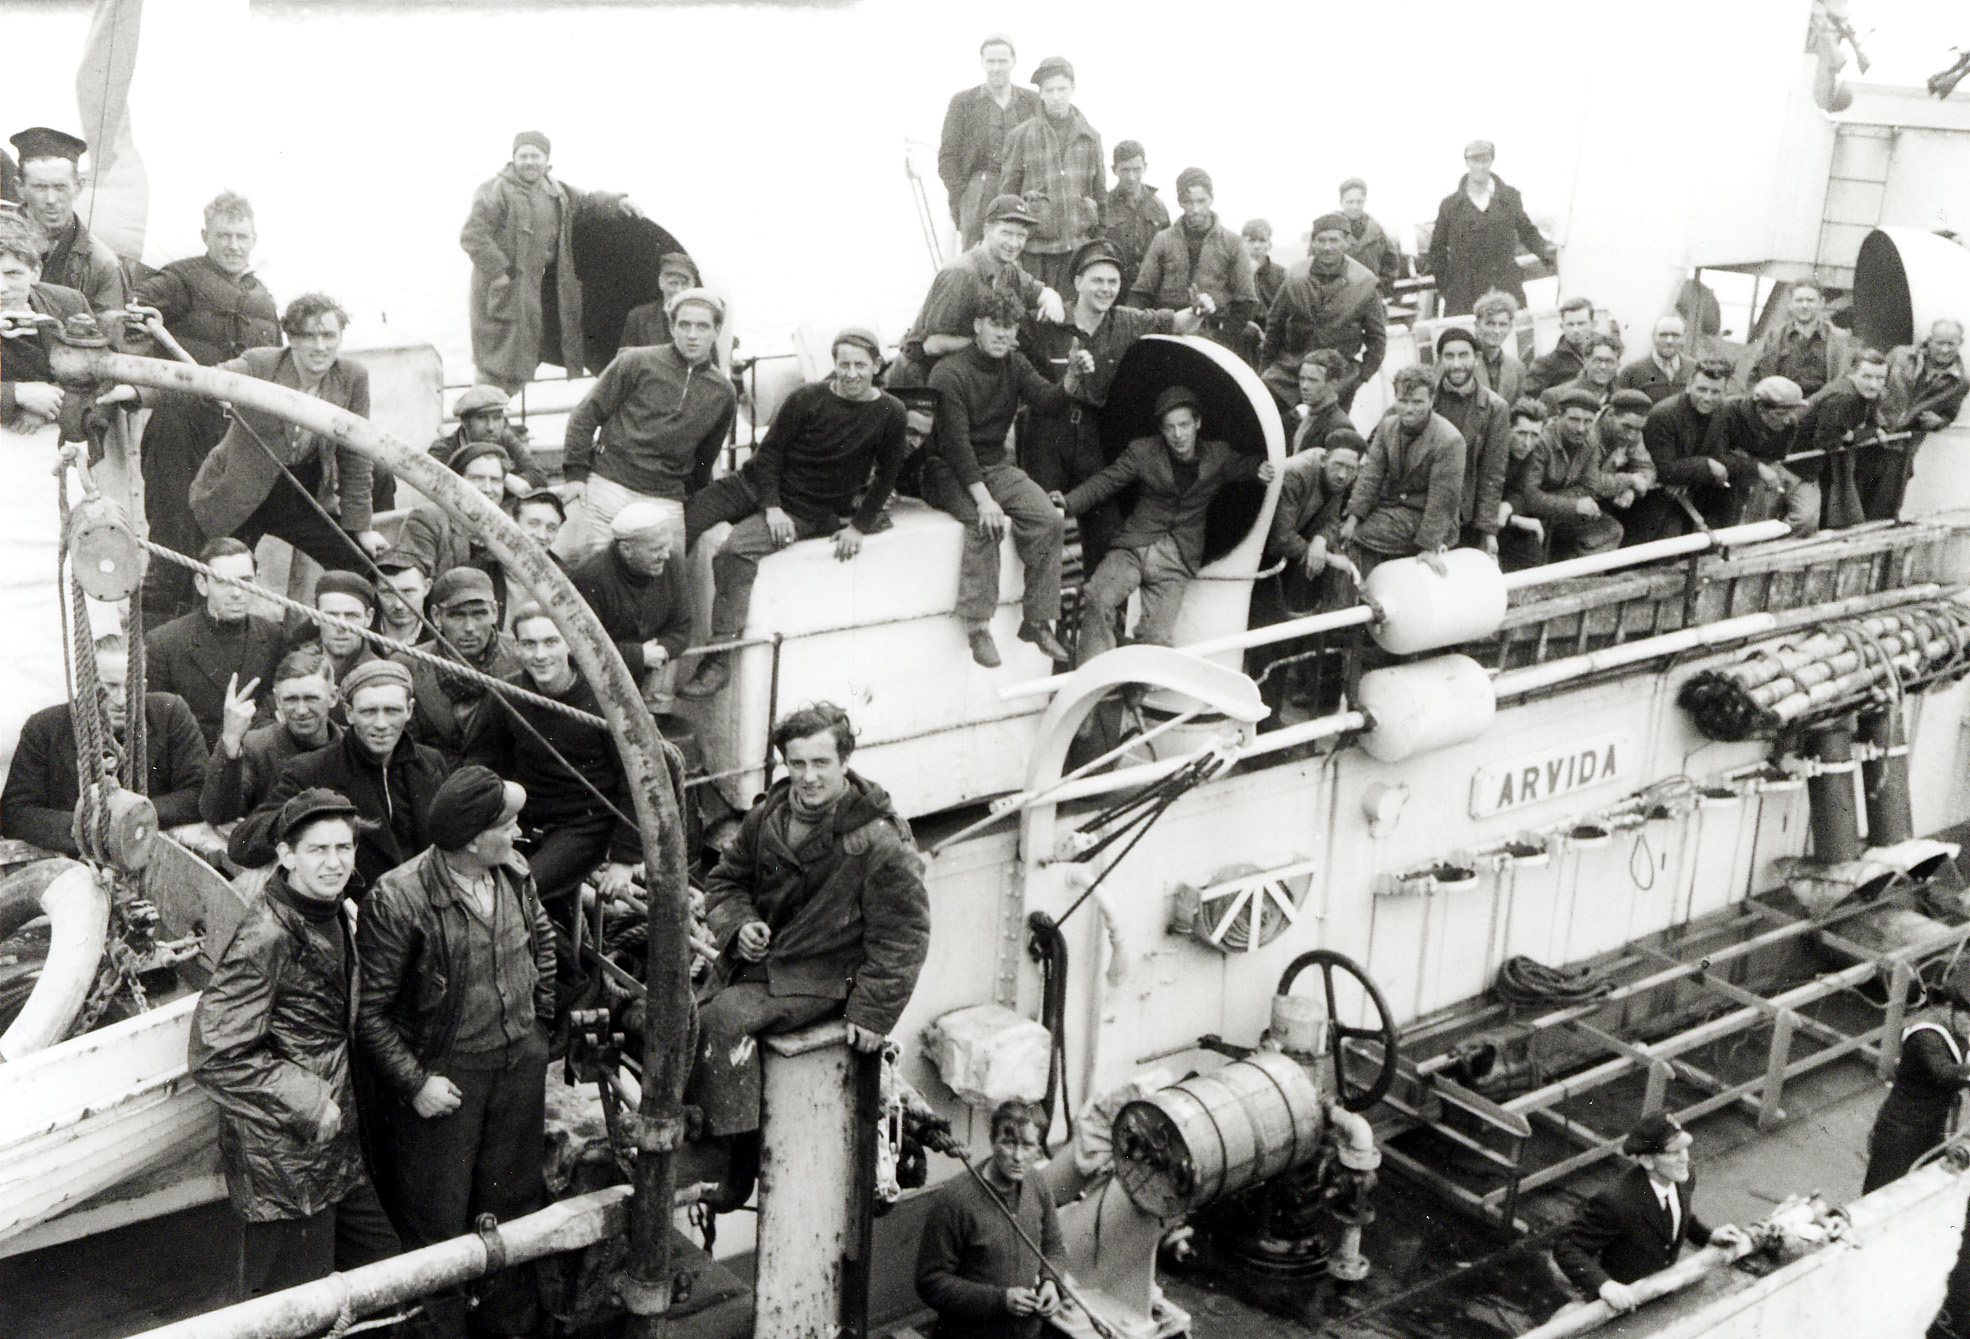 slide - Seamen from torpedoed ship aboard HMCS Arvida, St. John's, NL June 1945.